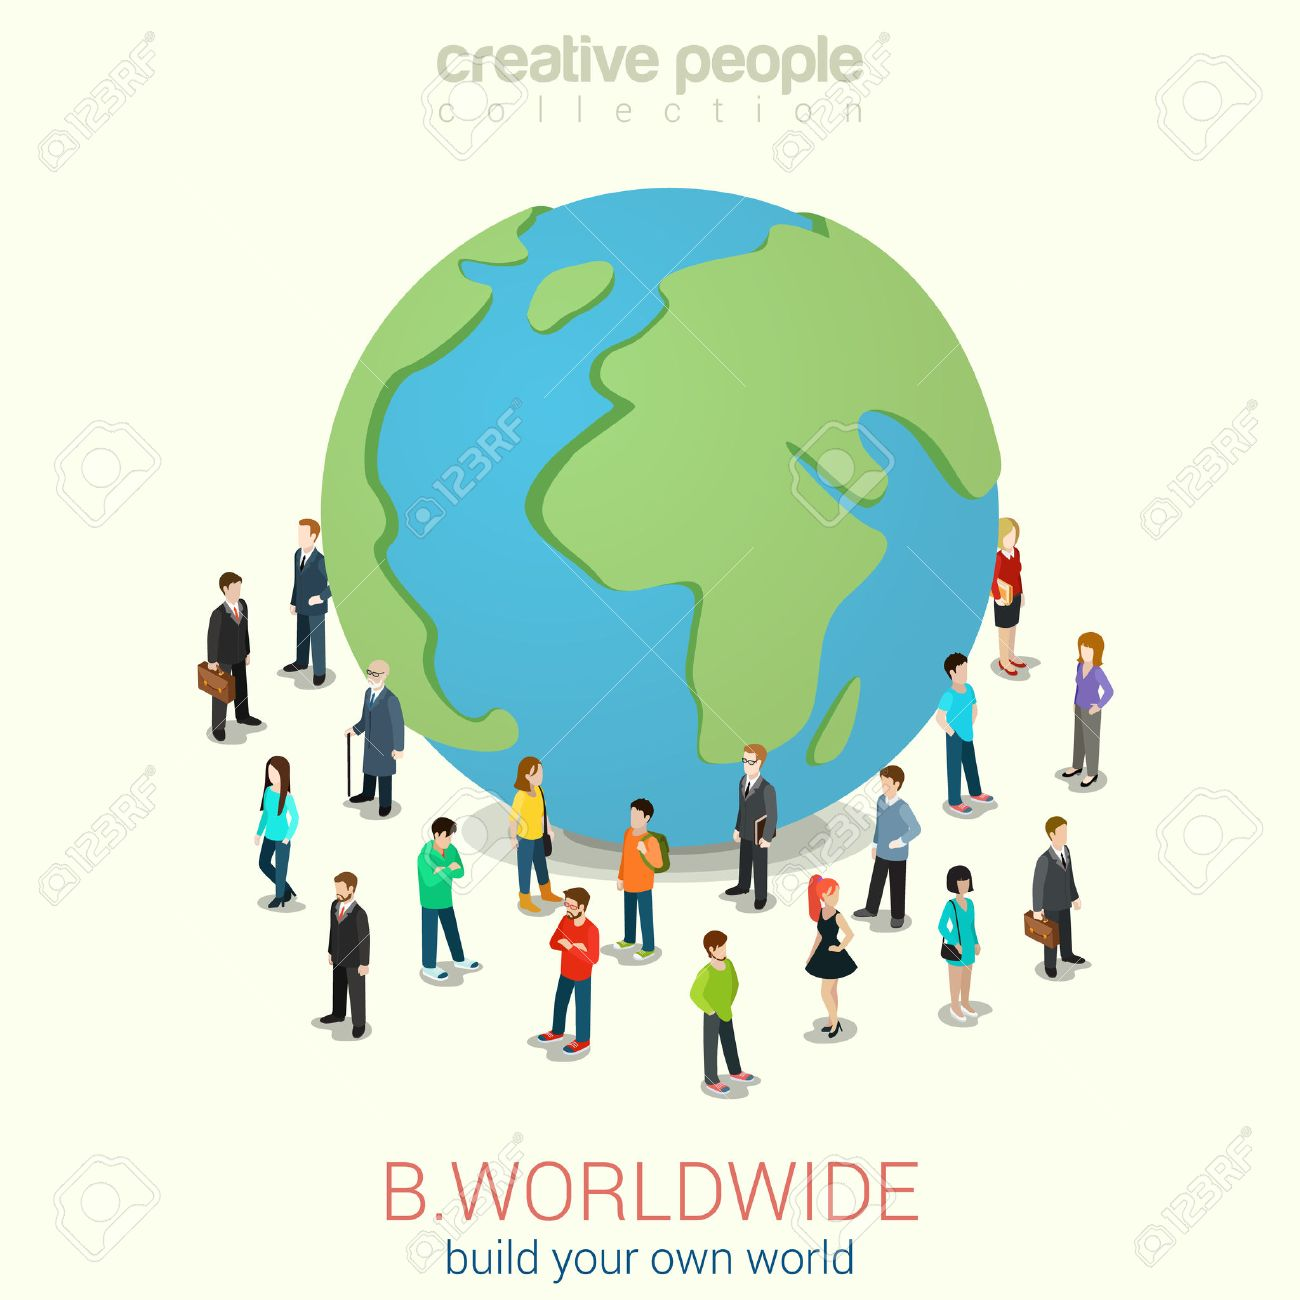 Be worldwide cosmopolitan globalization flat 3d web isometric infographic concept vector. Micro people standing around huge earth planet globe. Creative people collection. Stock Vector - 48578833